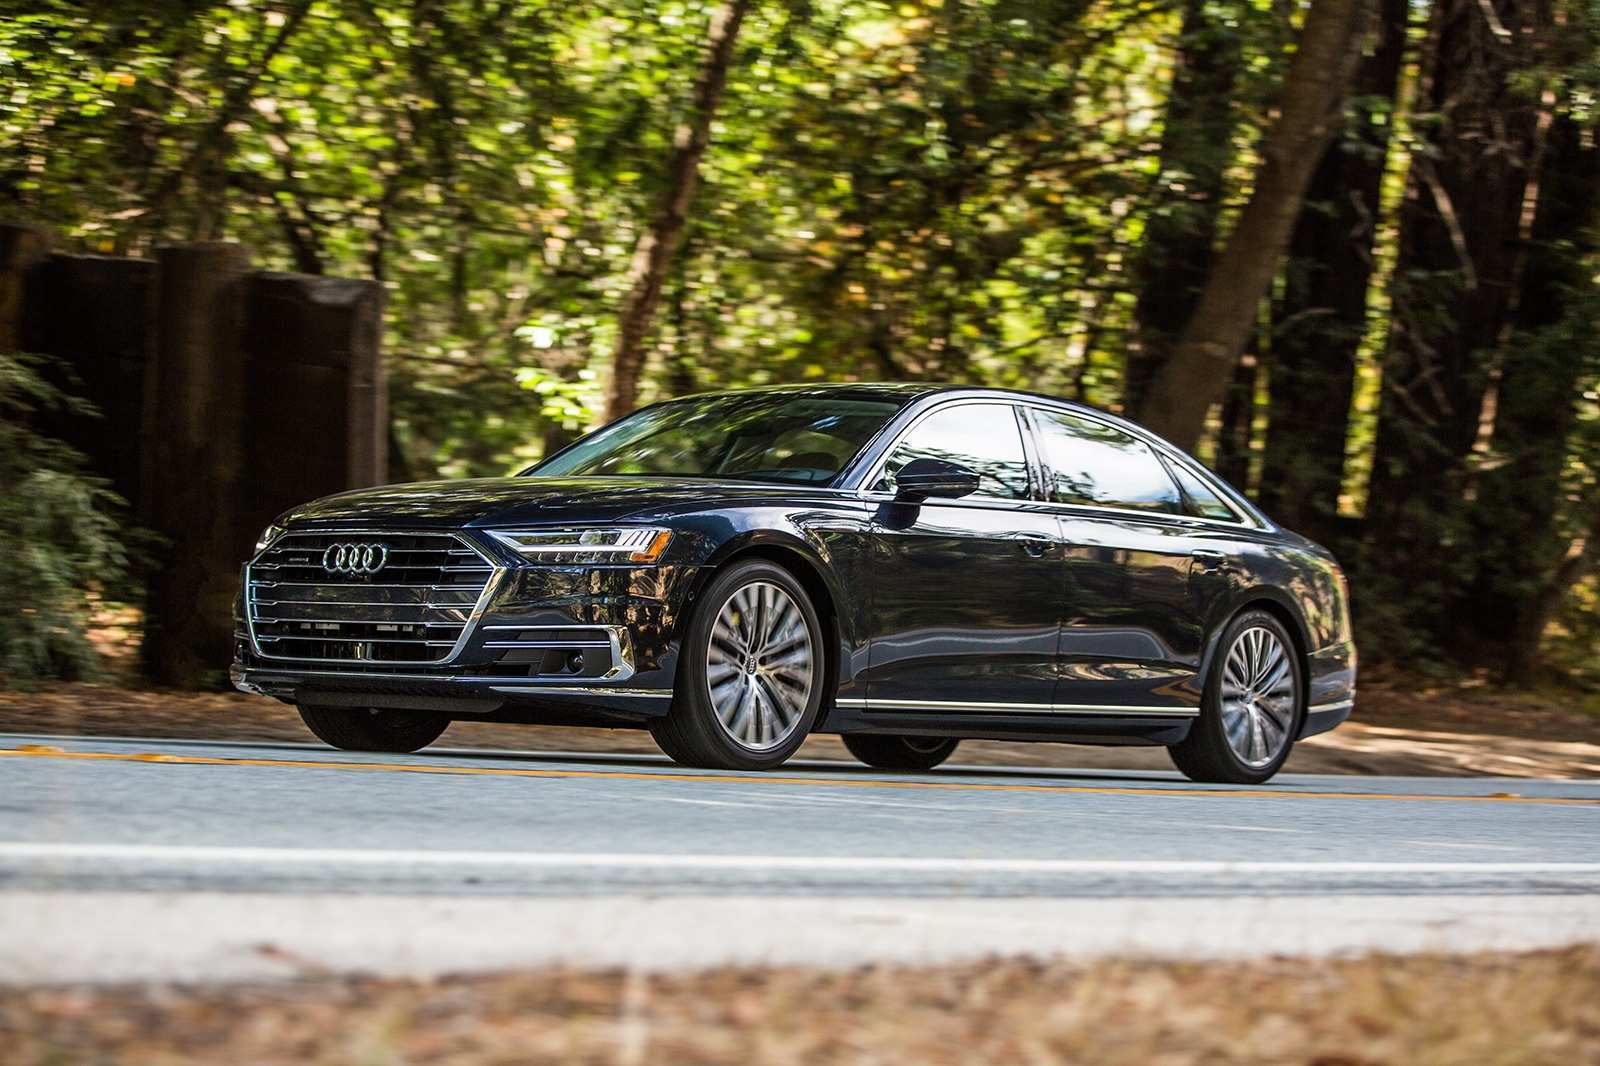 27 Gallery of New 2019 Audi Vehicles Redesign And Price Style for New 2019 Audi Vehicles Redesign And Price